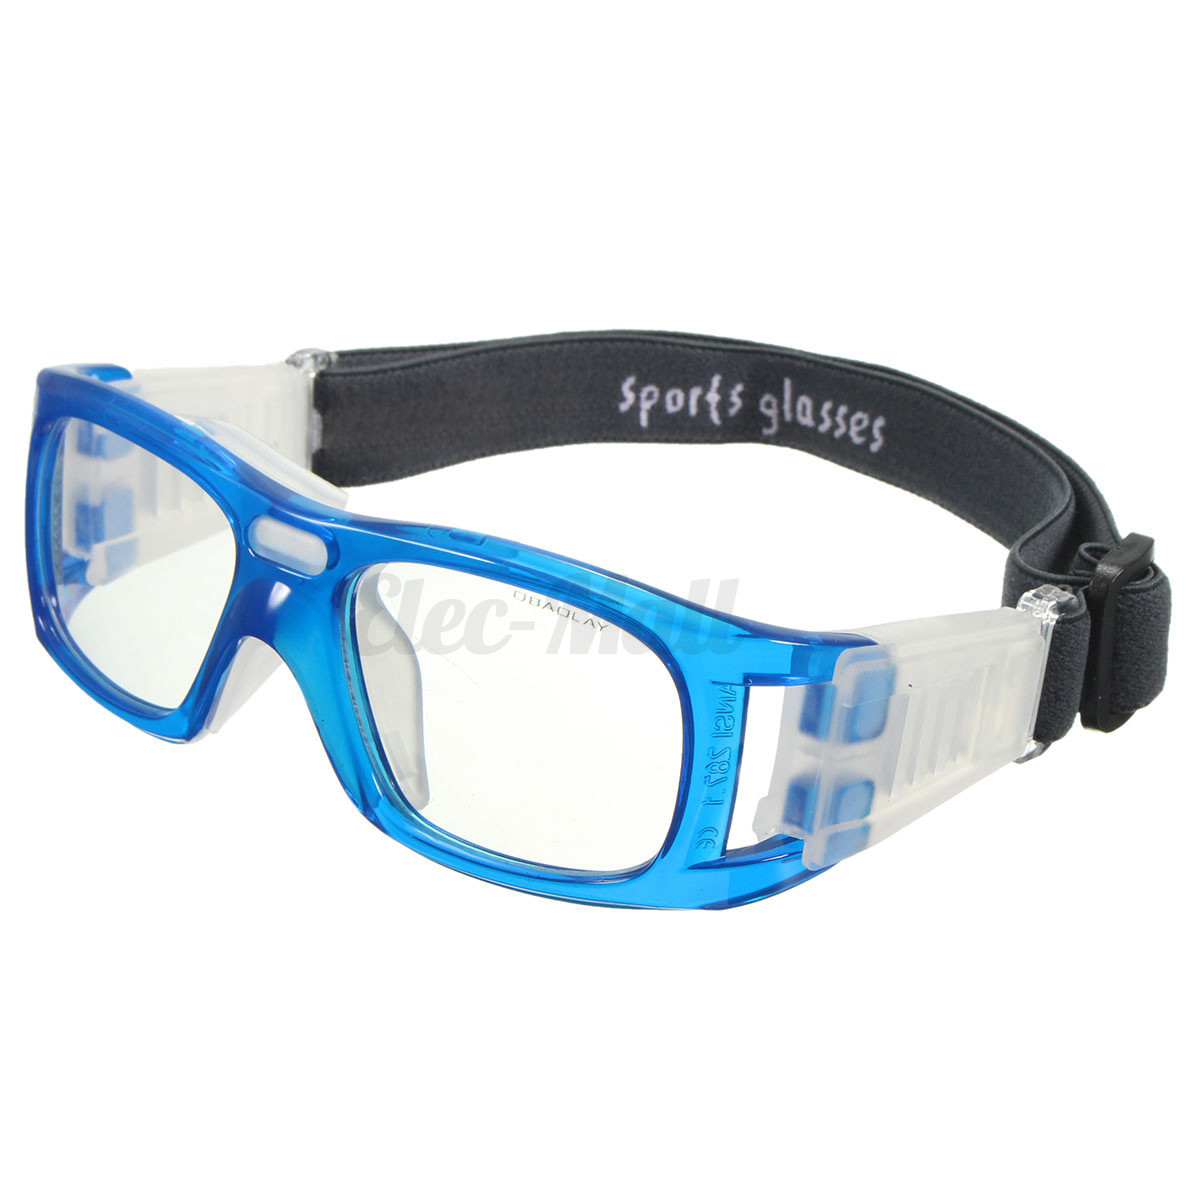 basketball soccer football sports glasses protective